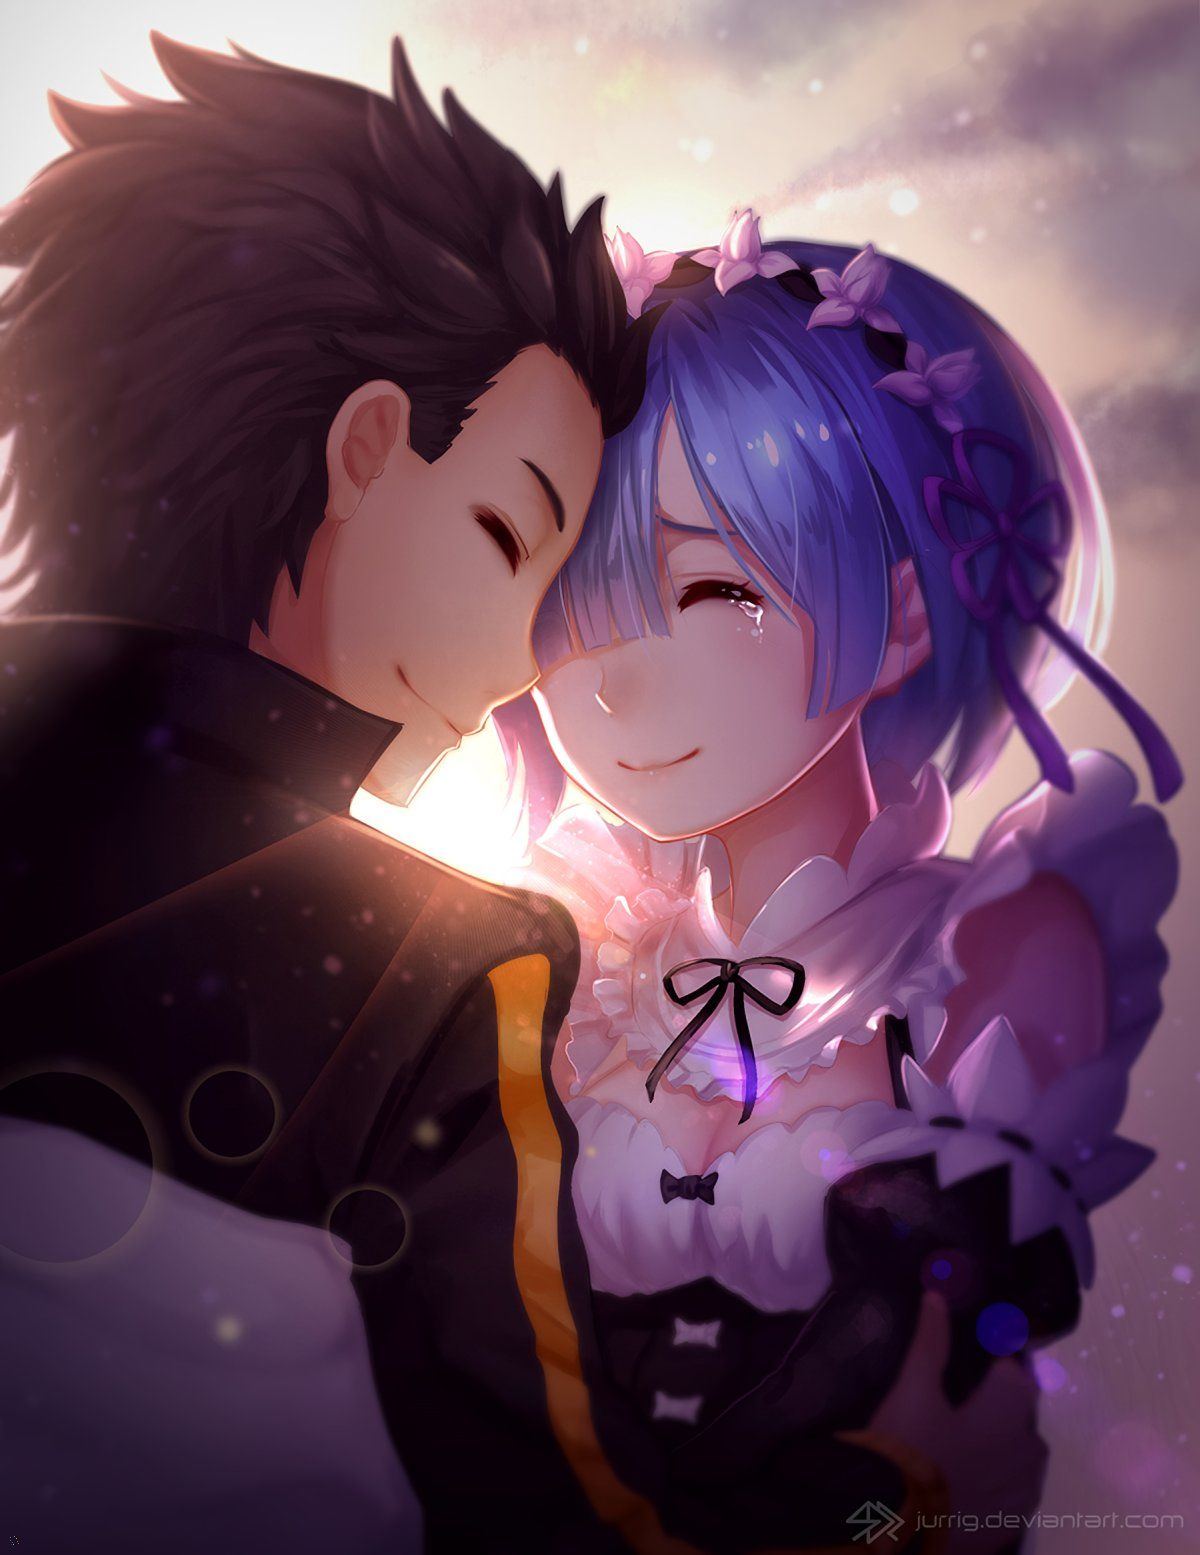 Rem and Subaru, ReZero, by Jurrig in 2020 (With images